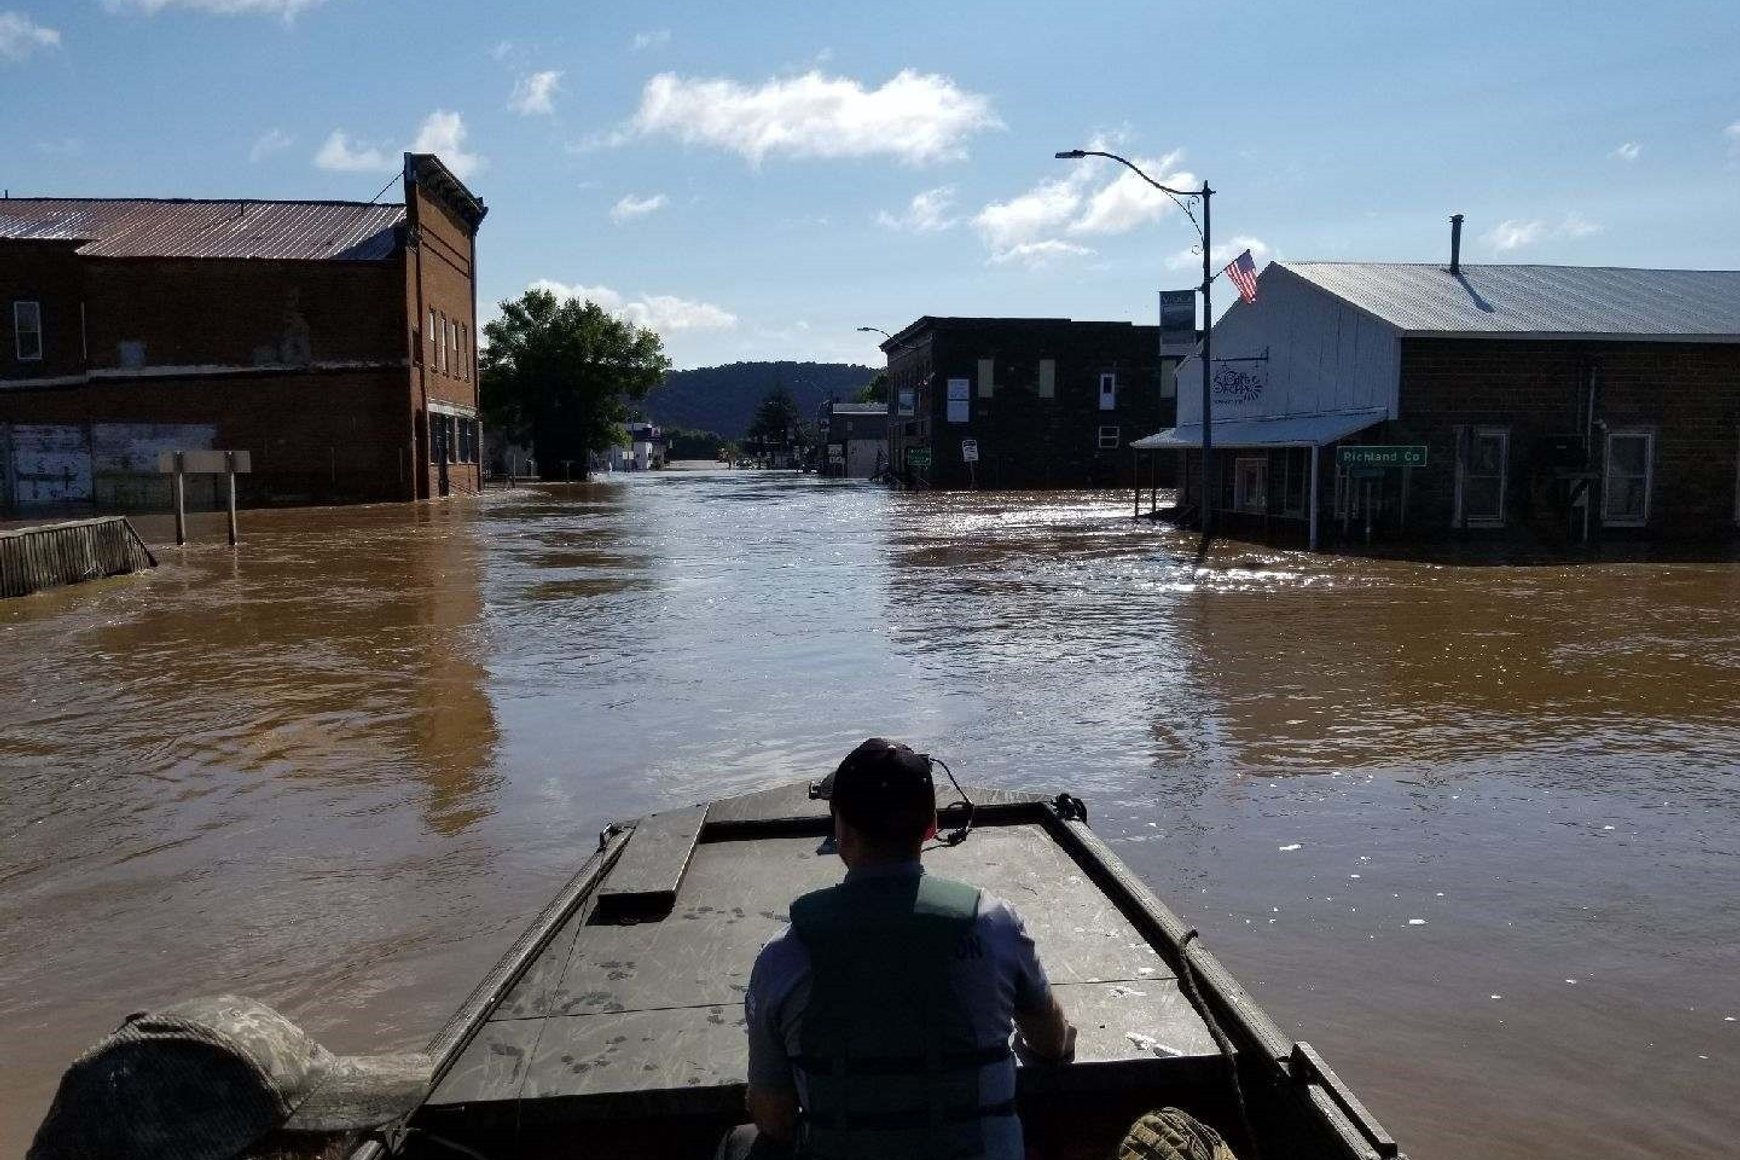 Photo of DNR warden in boat in flooded street in Viola.